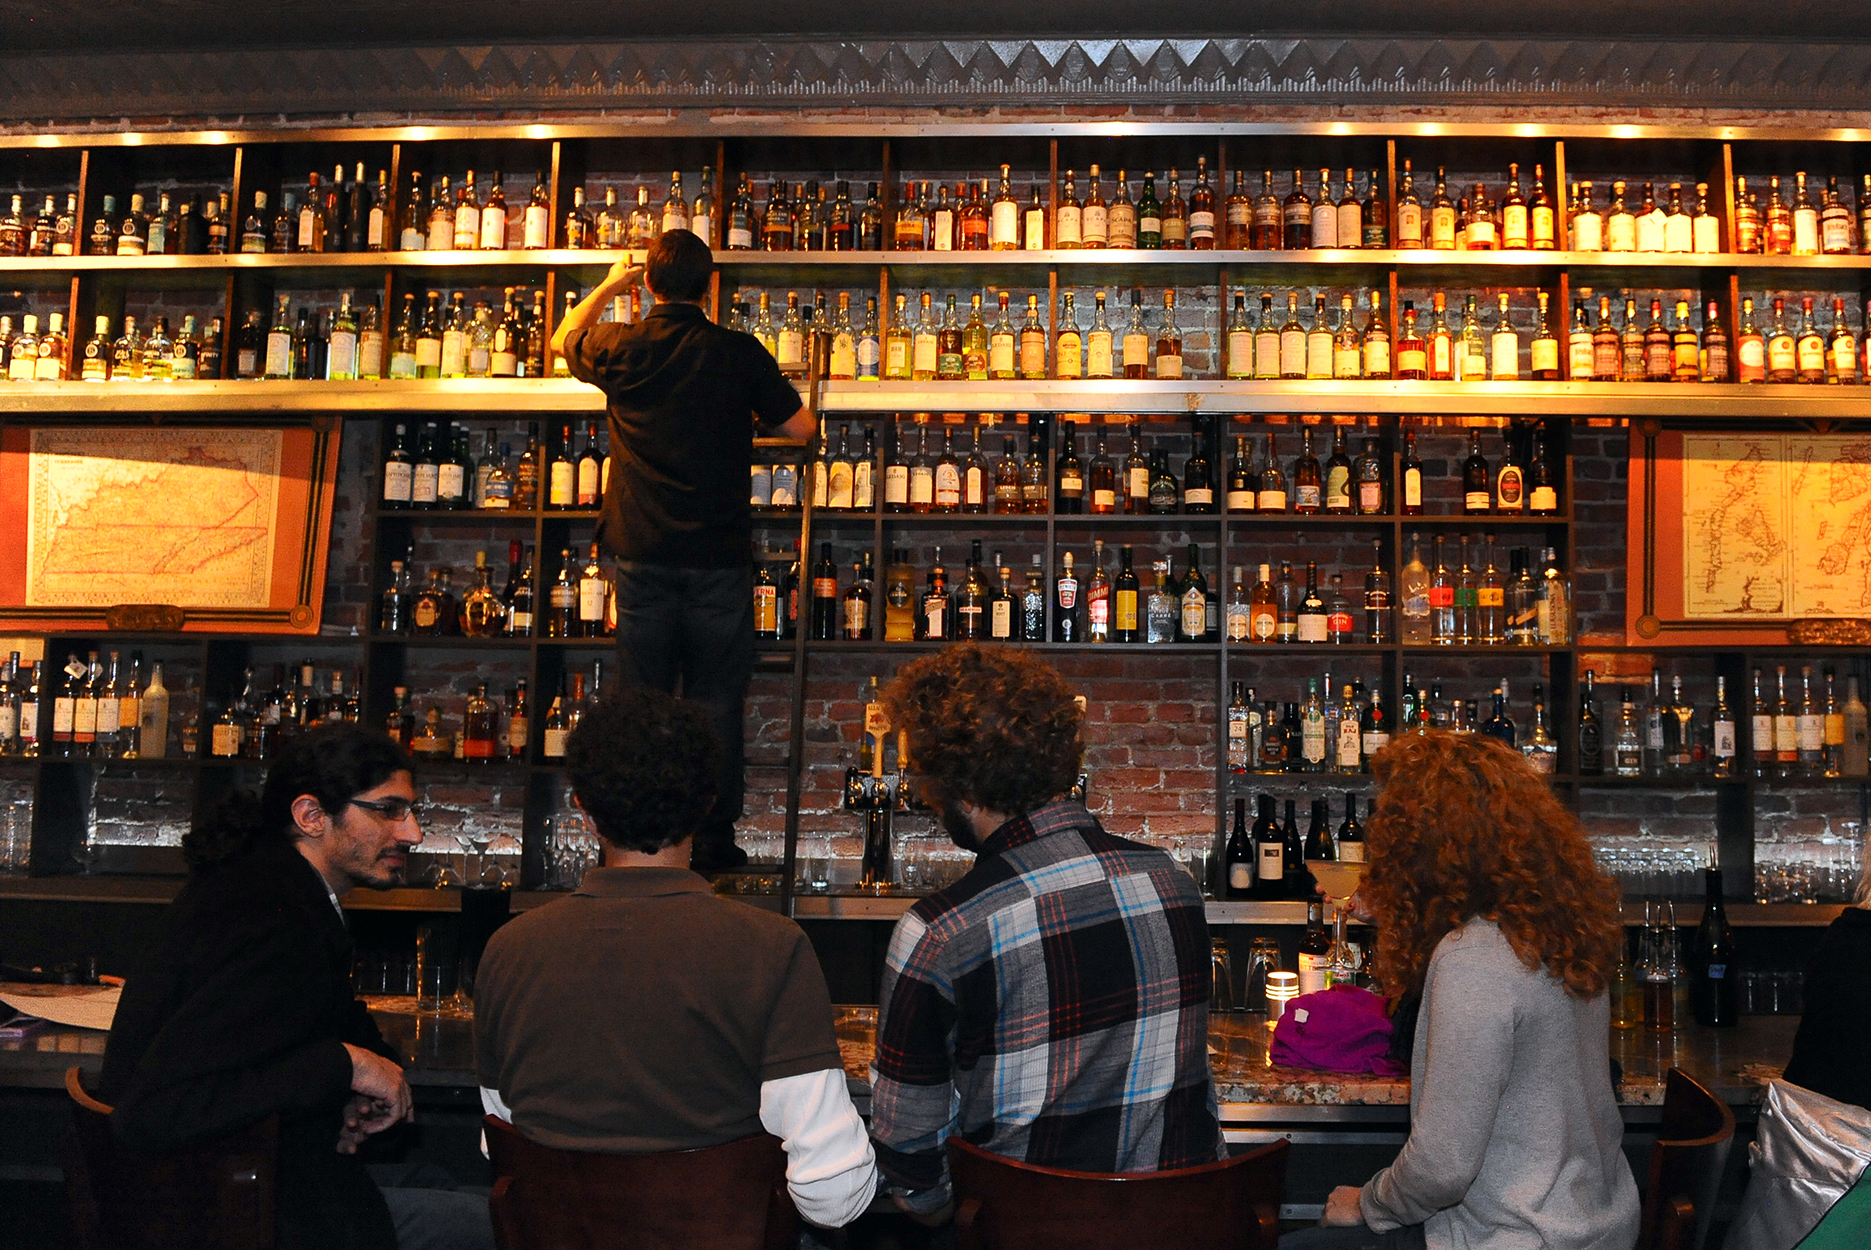 The bar at Jack Rose in Washington D.C. with its 1400 bottle whiskey collection